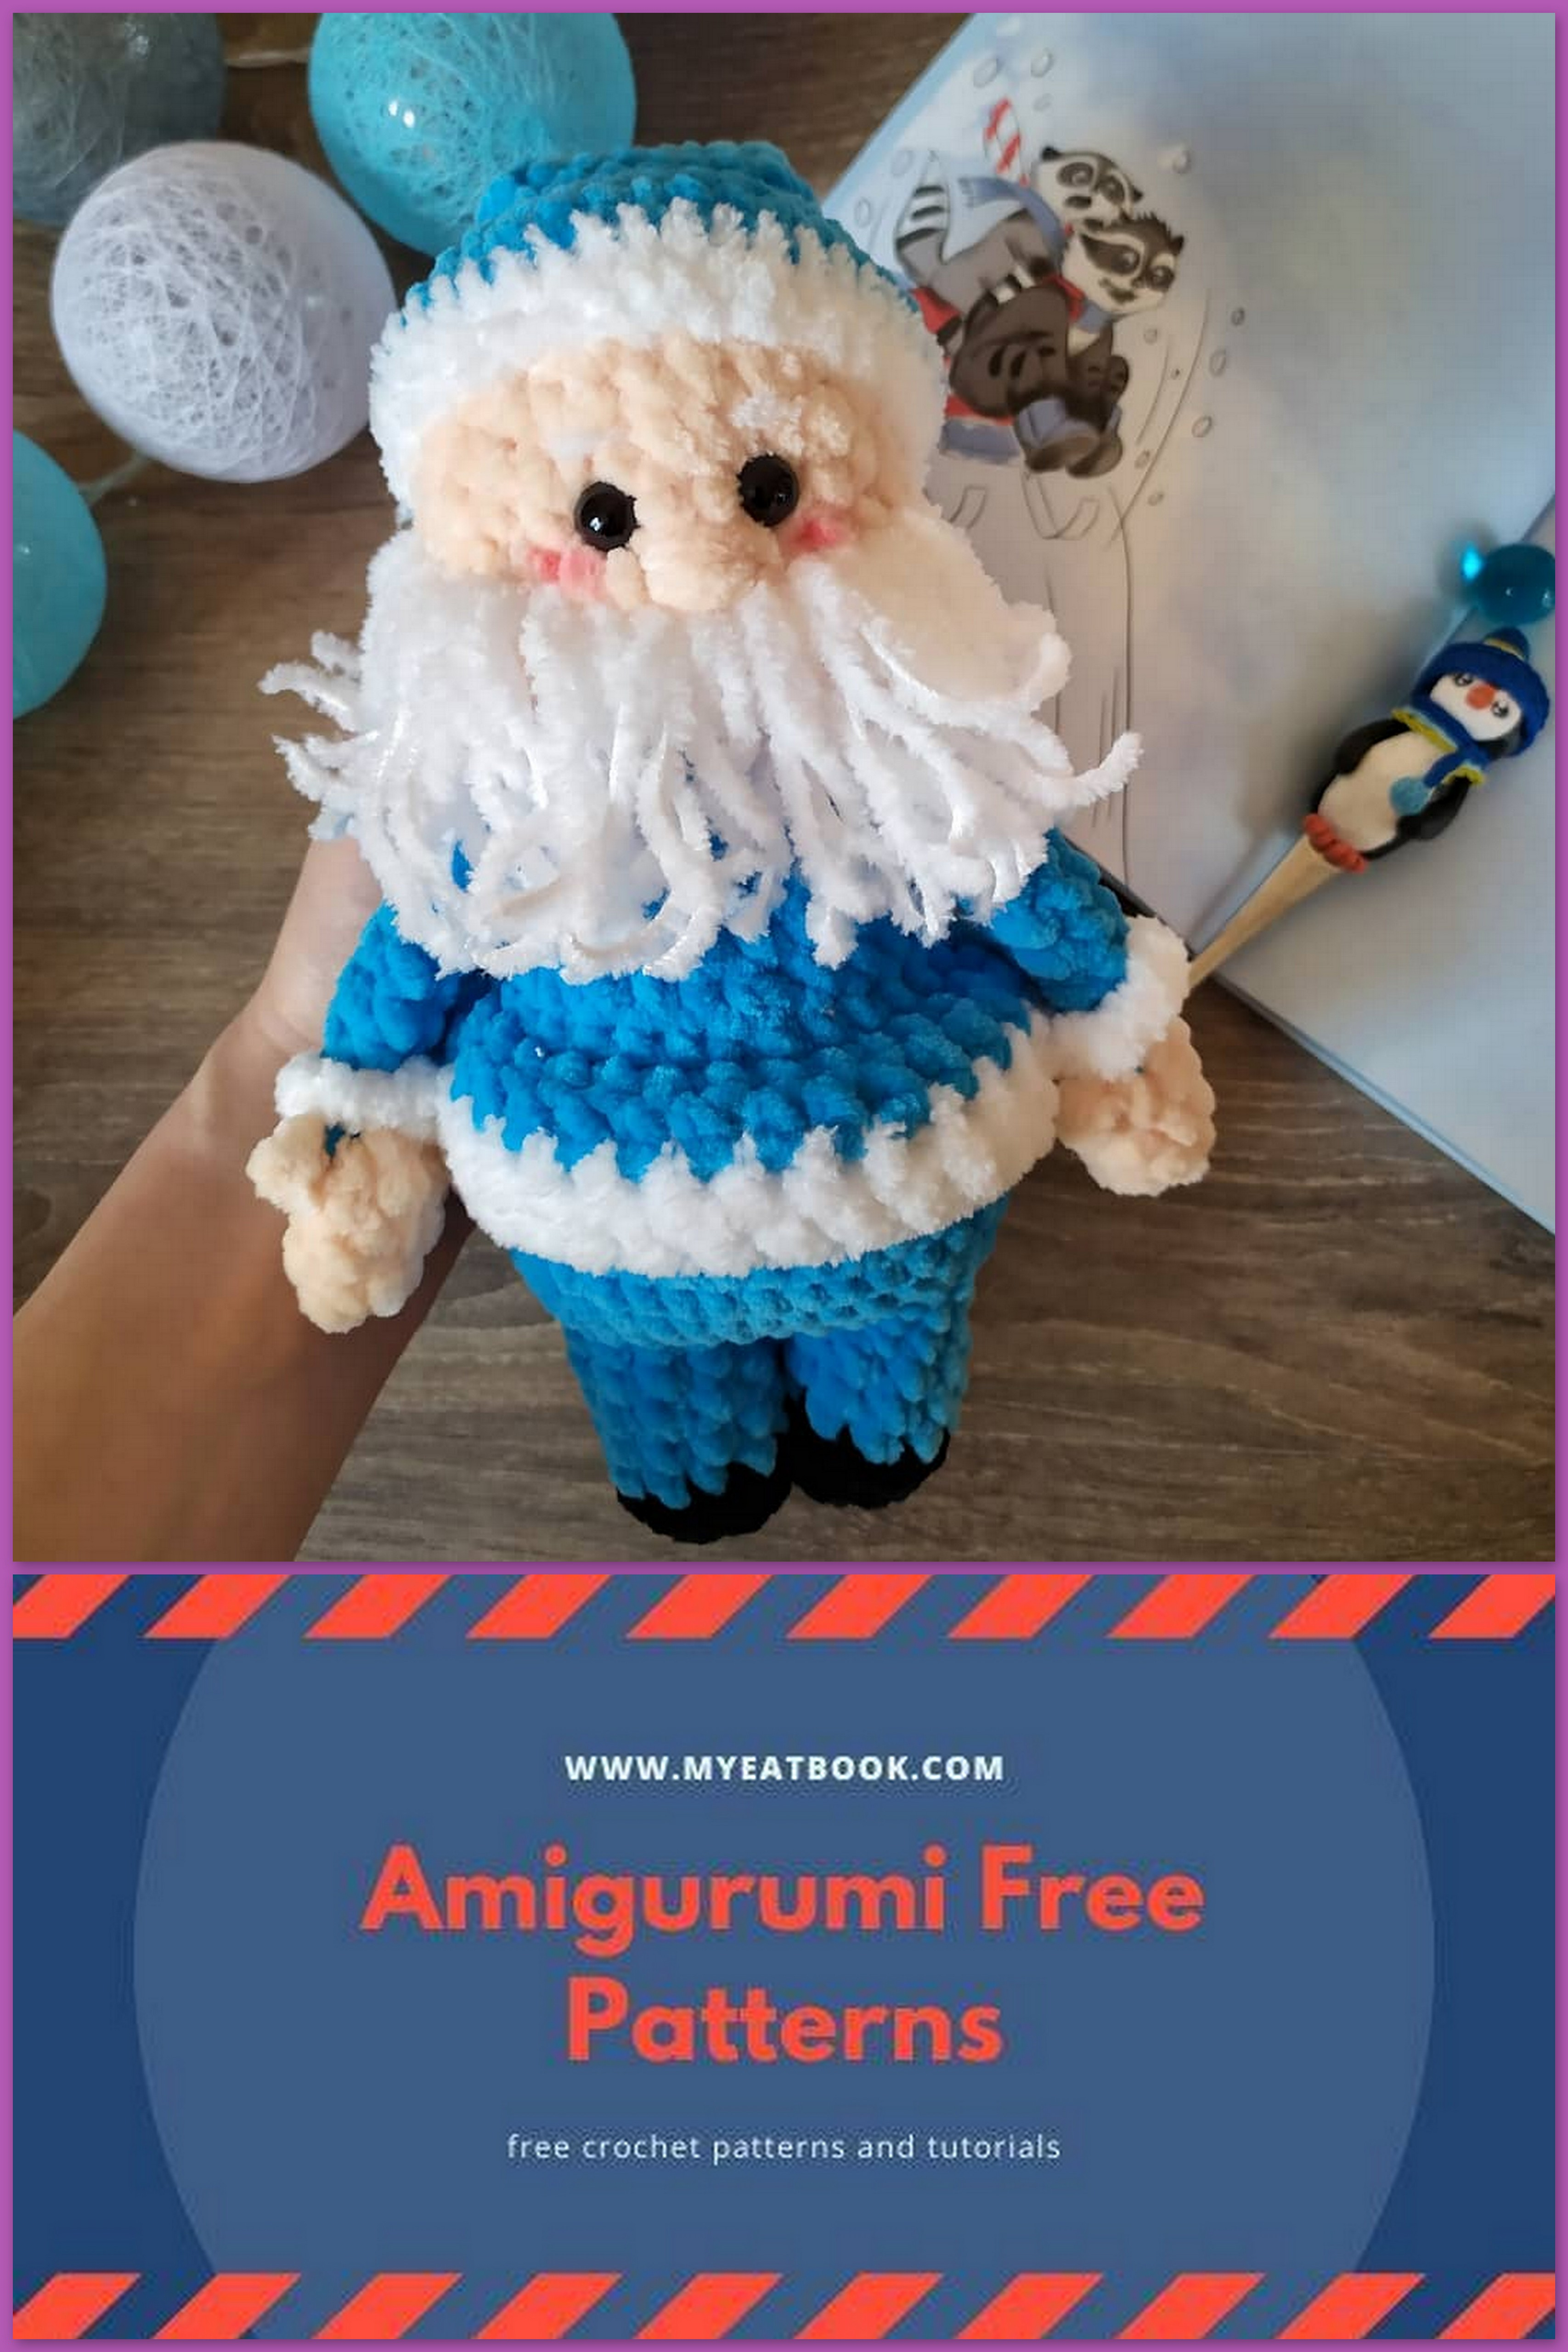 Amigurumi Santa Claus Crochet Pattern And Reindeer Toy Crochet ... | 5120x3414